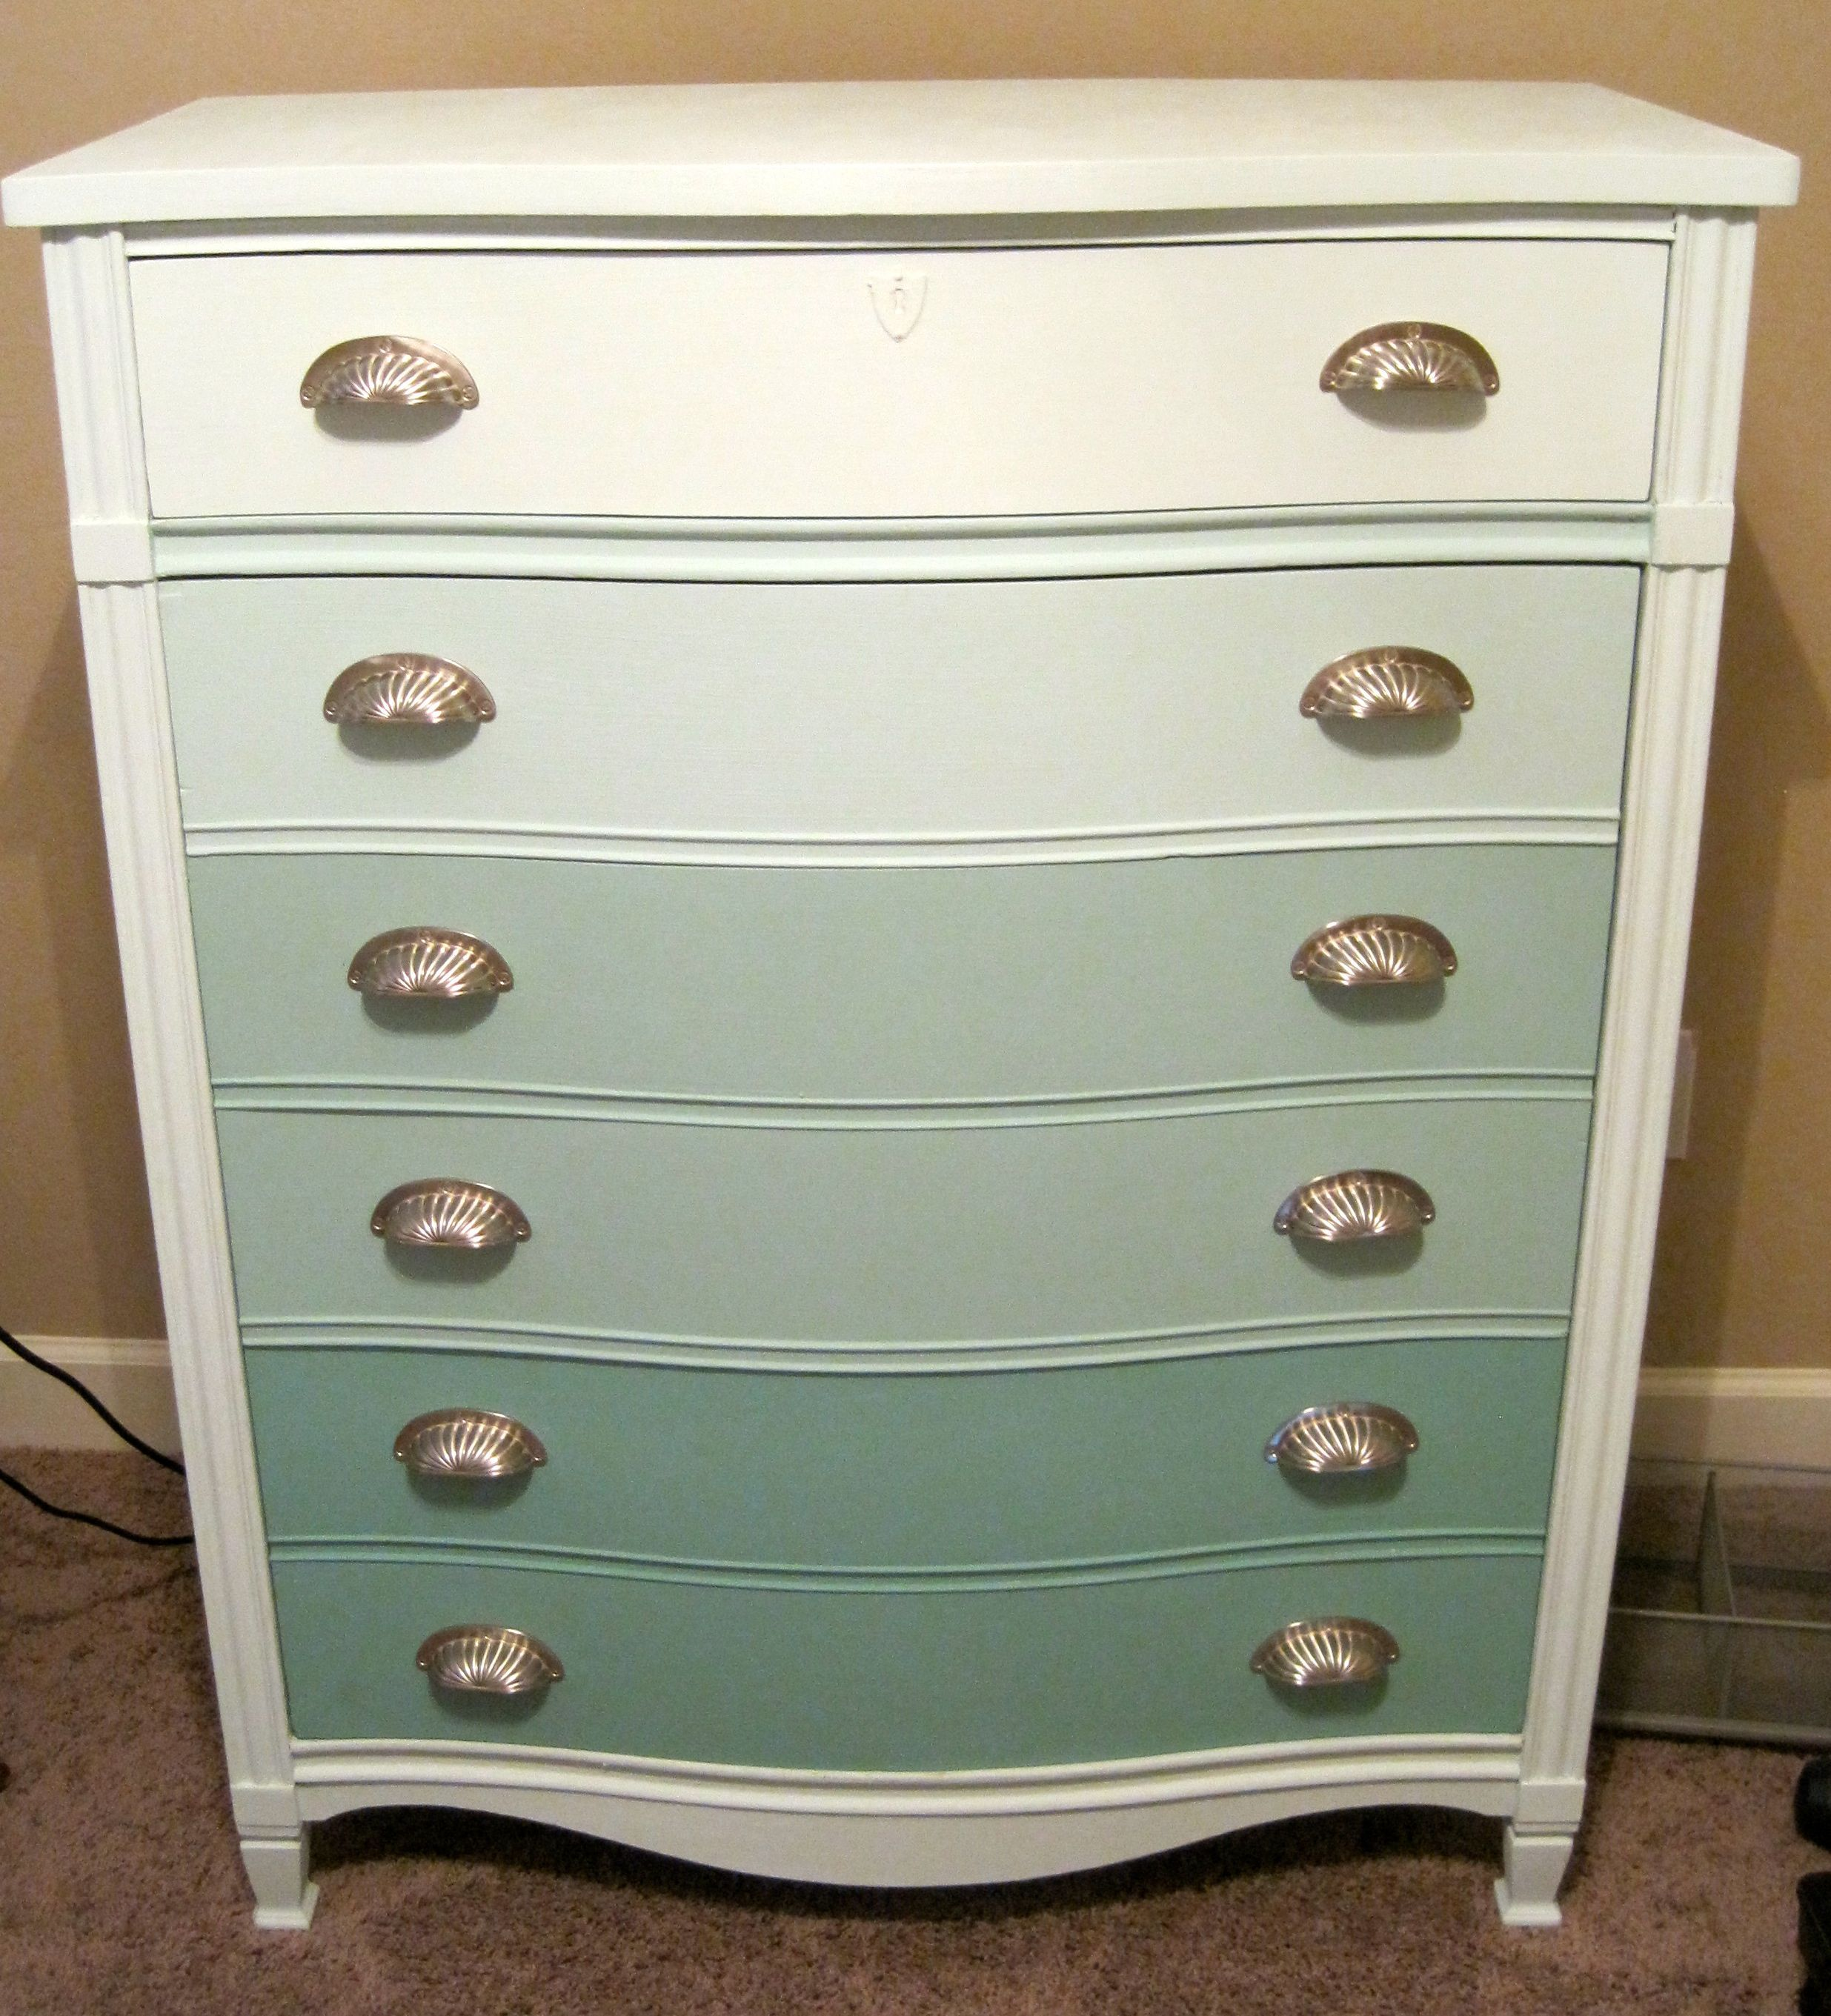 Ombre technique supplies and tips from sherwin williams - Ombre Dresser Done Using Homemade Chalk Paint Made Of Sherwin Williams Sample Paint Plaster